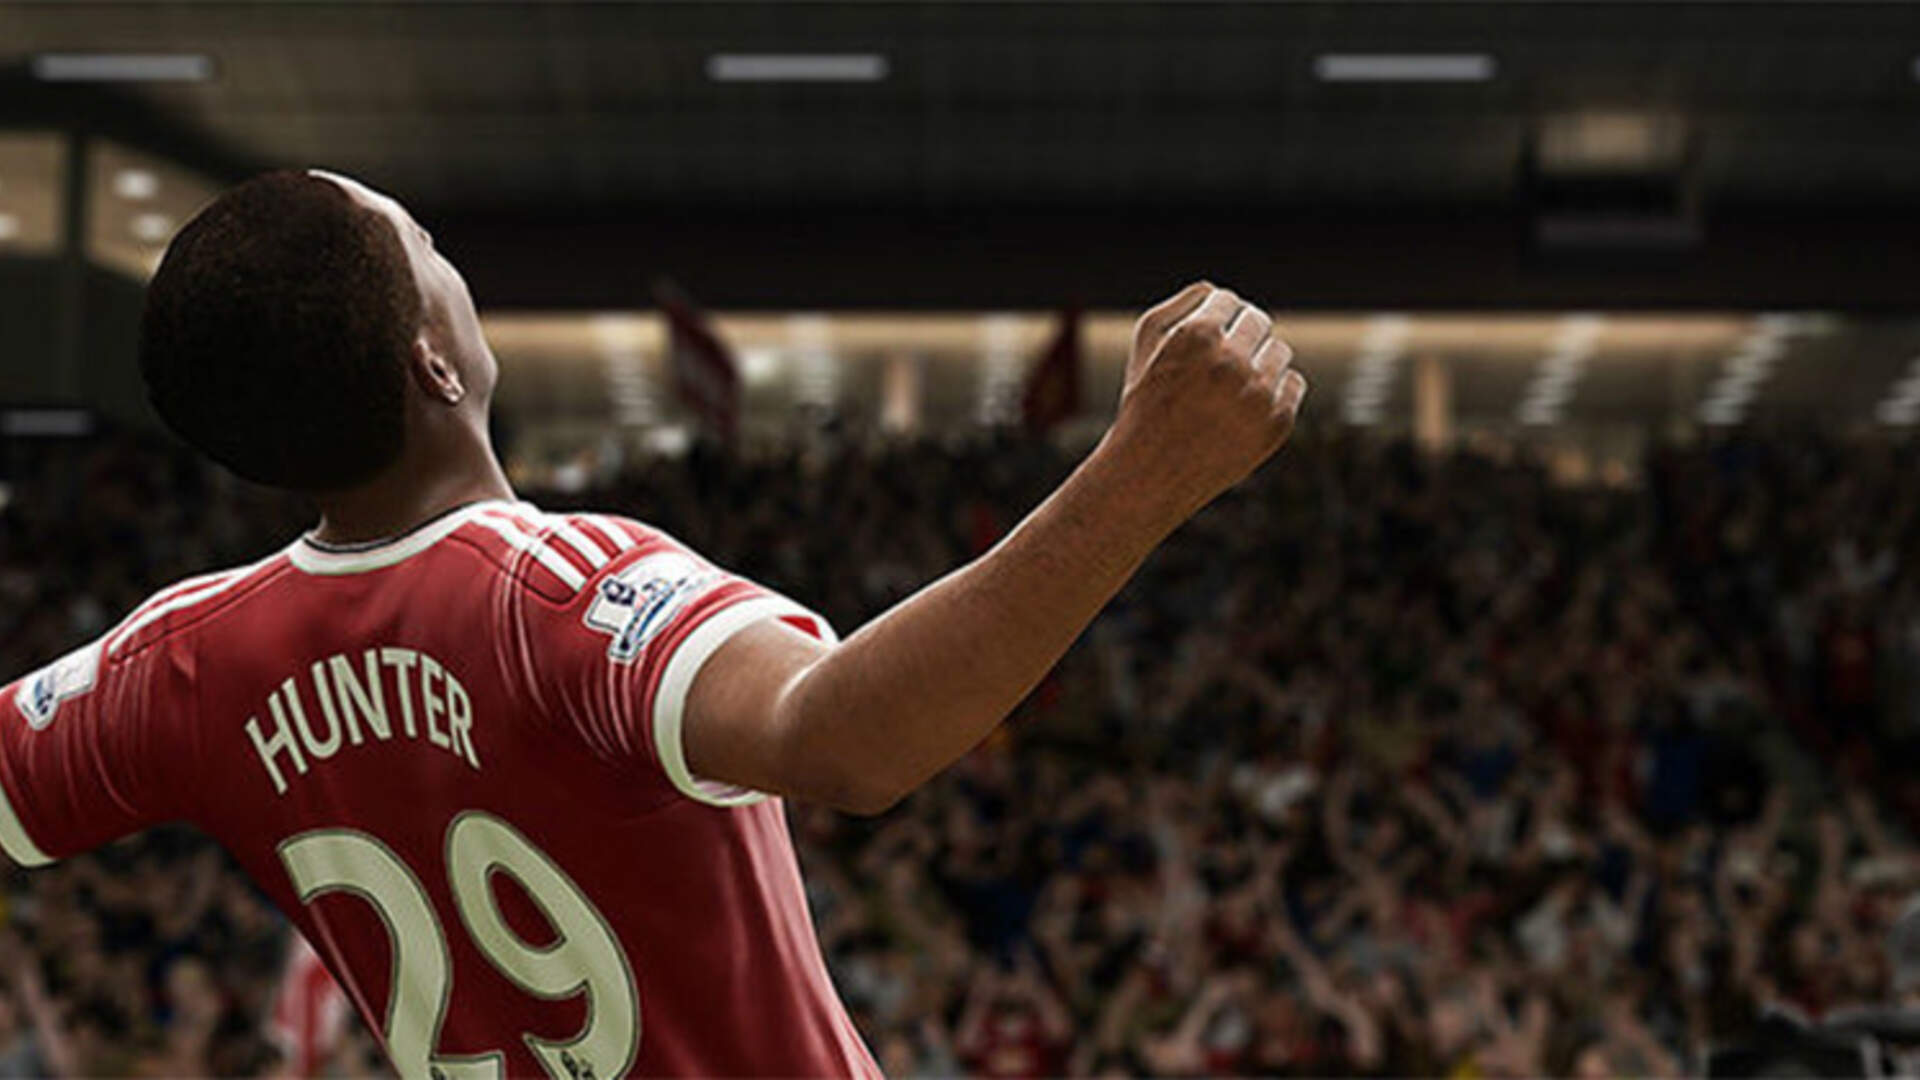 FIFA 17 PlayStation 4 Review: The Journey Begins